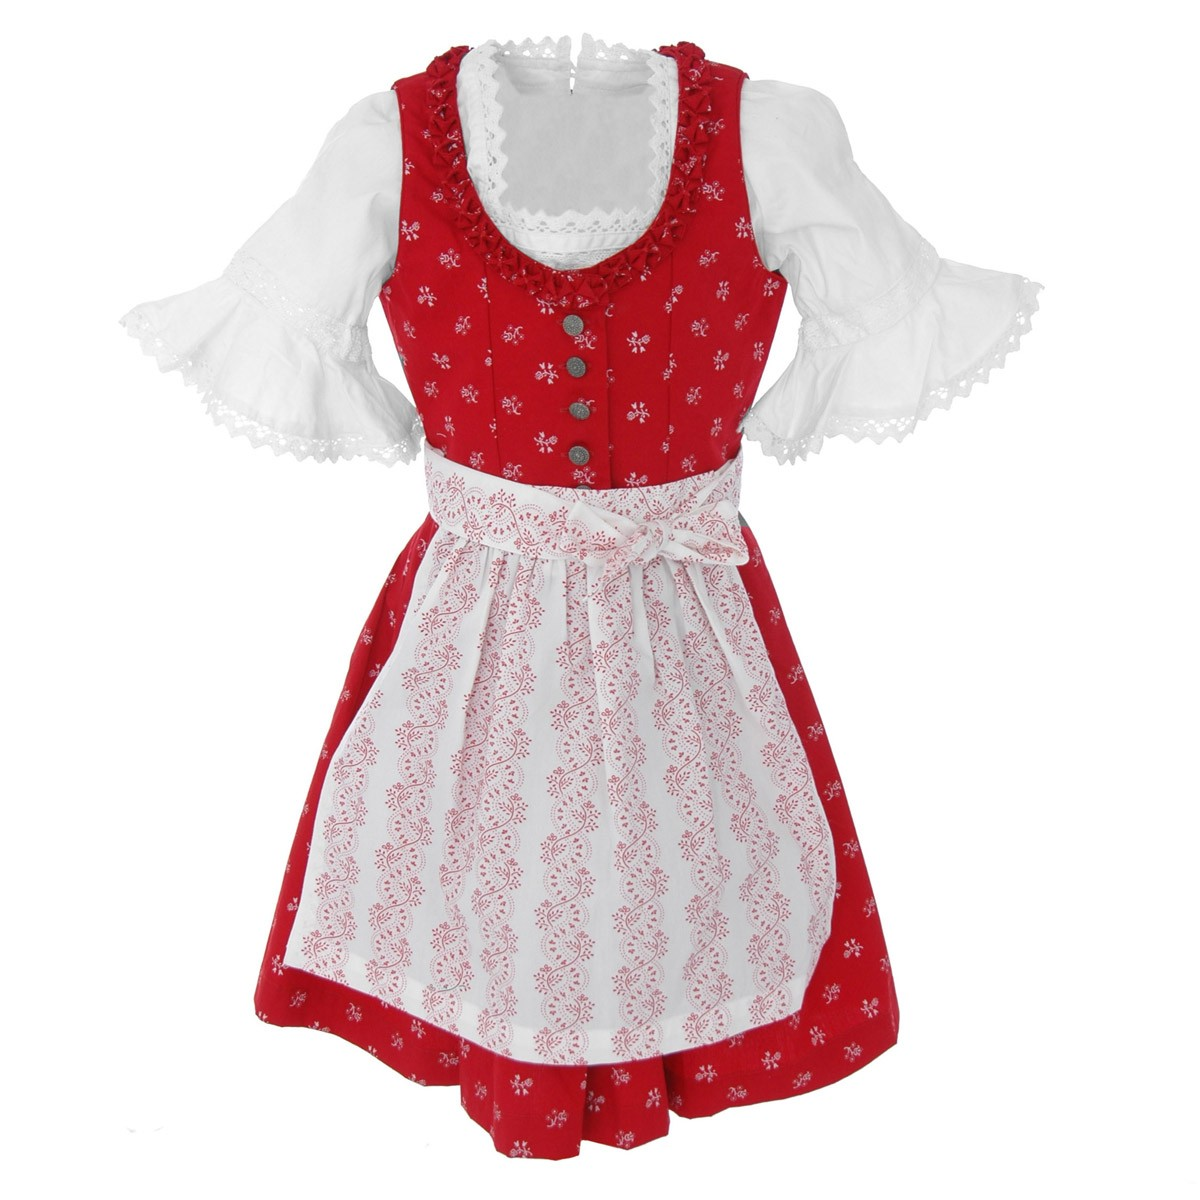 Kinderdirndl in rot